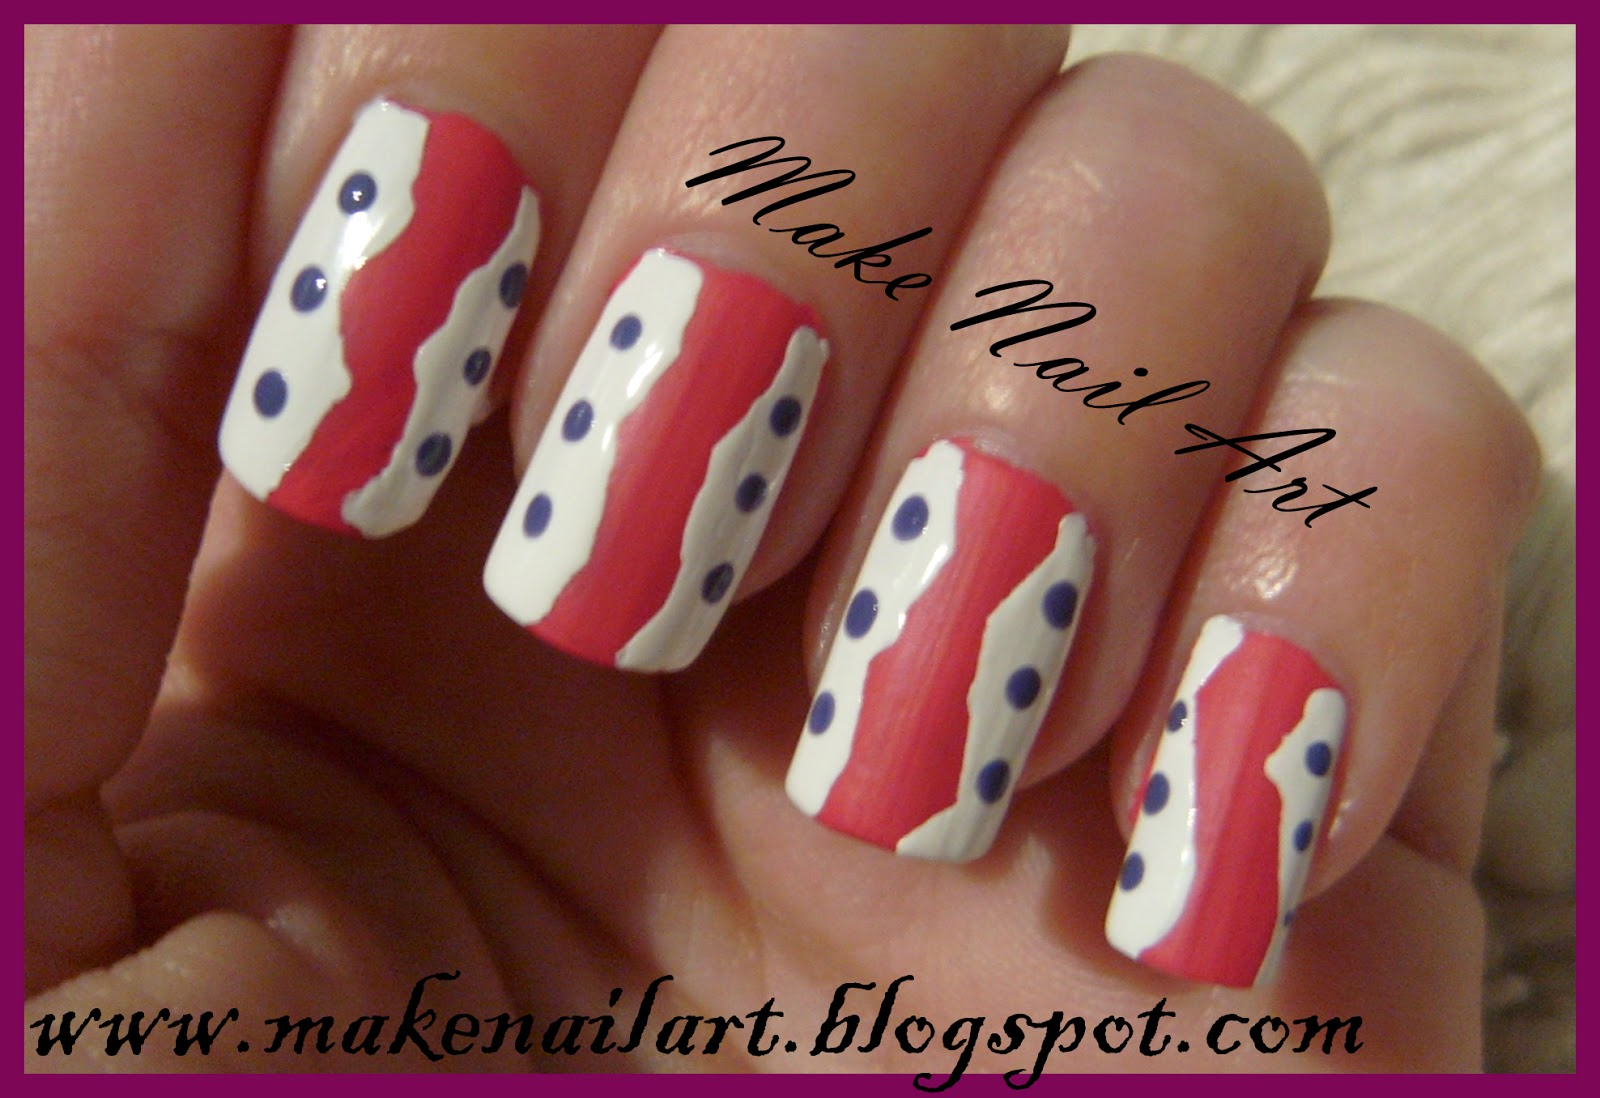 Make Nail Art Nail Art Tutorial For Everyday With Dots And Scotch Tape